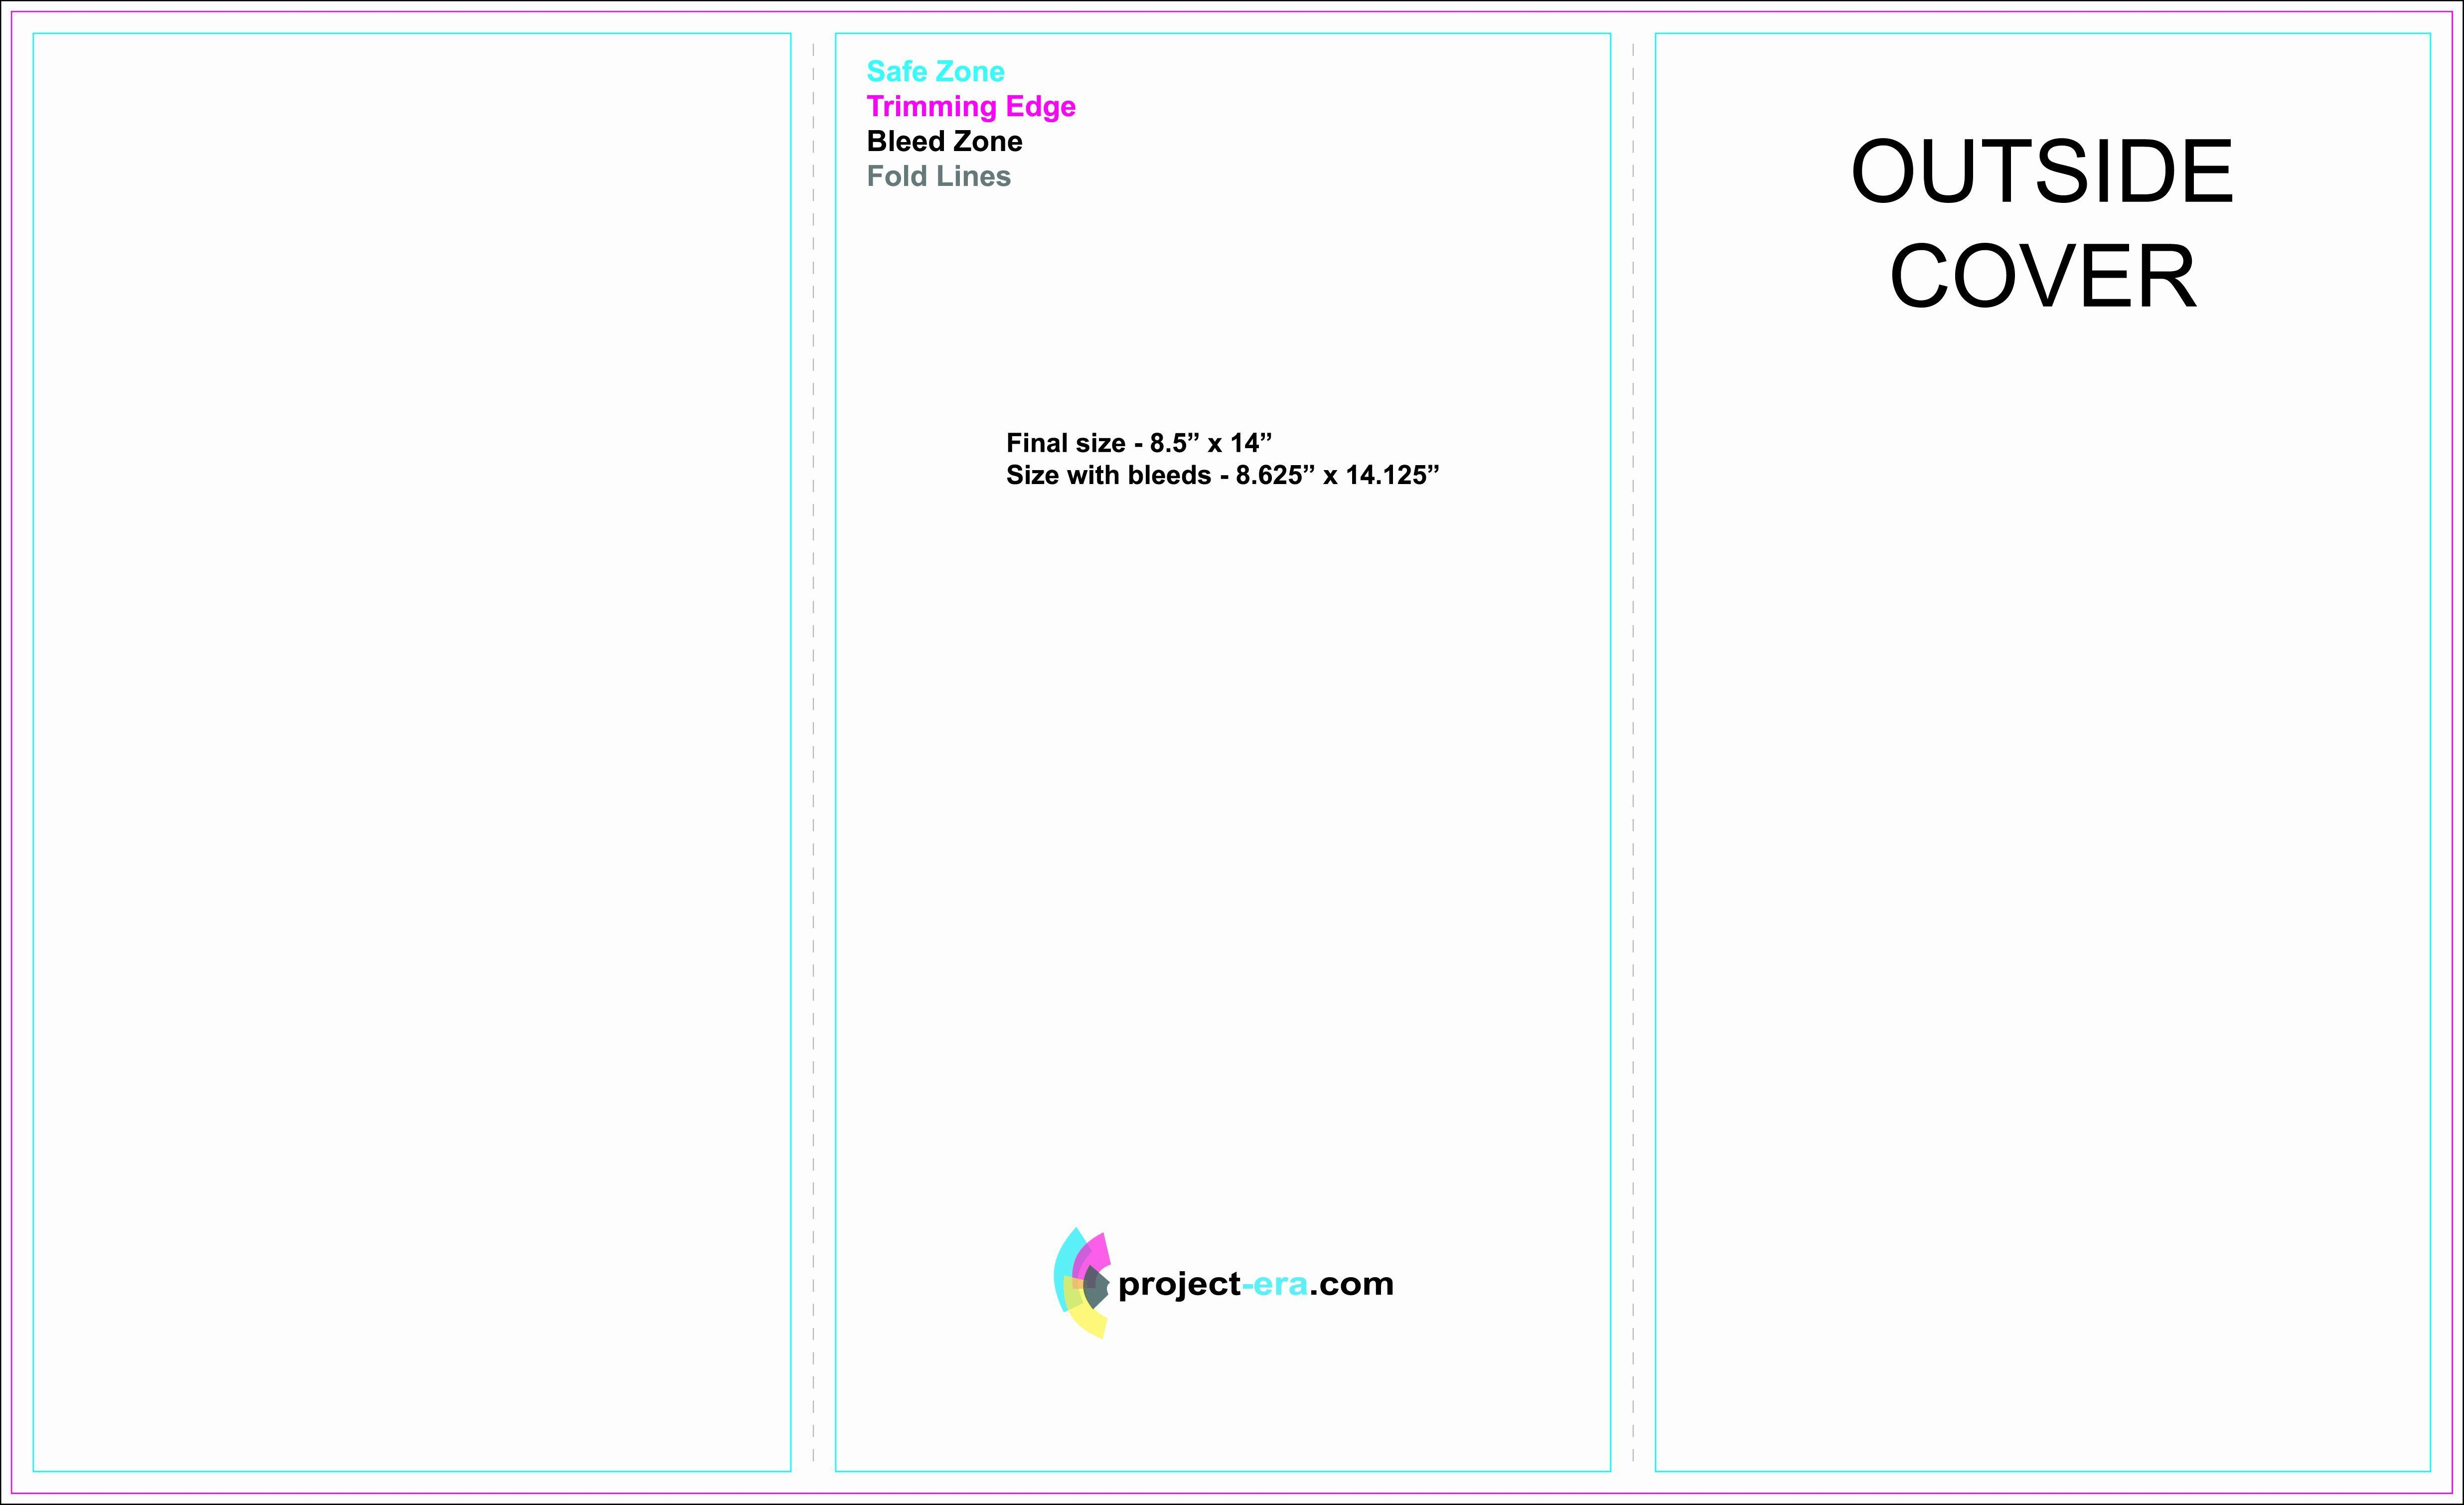 000 Wonderful Template For Trifold Brochure Highest Clarity  Tri Fold Indesign A4 Free In Word DownloadFull